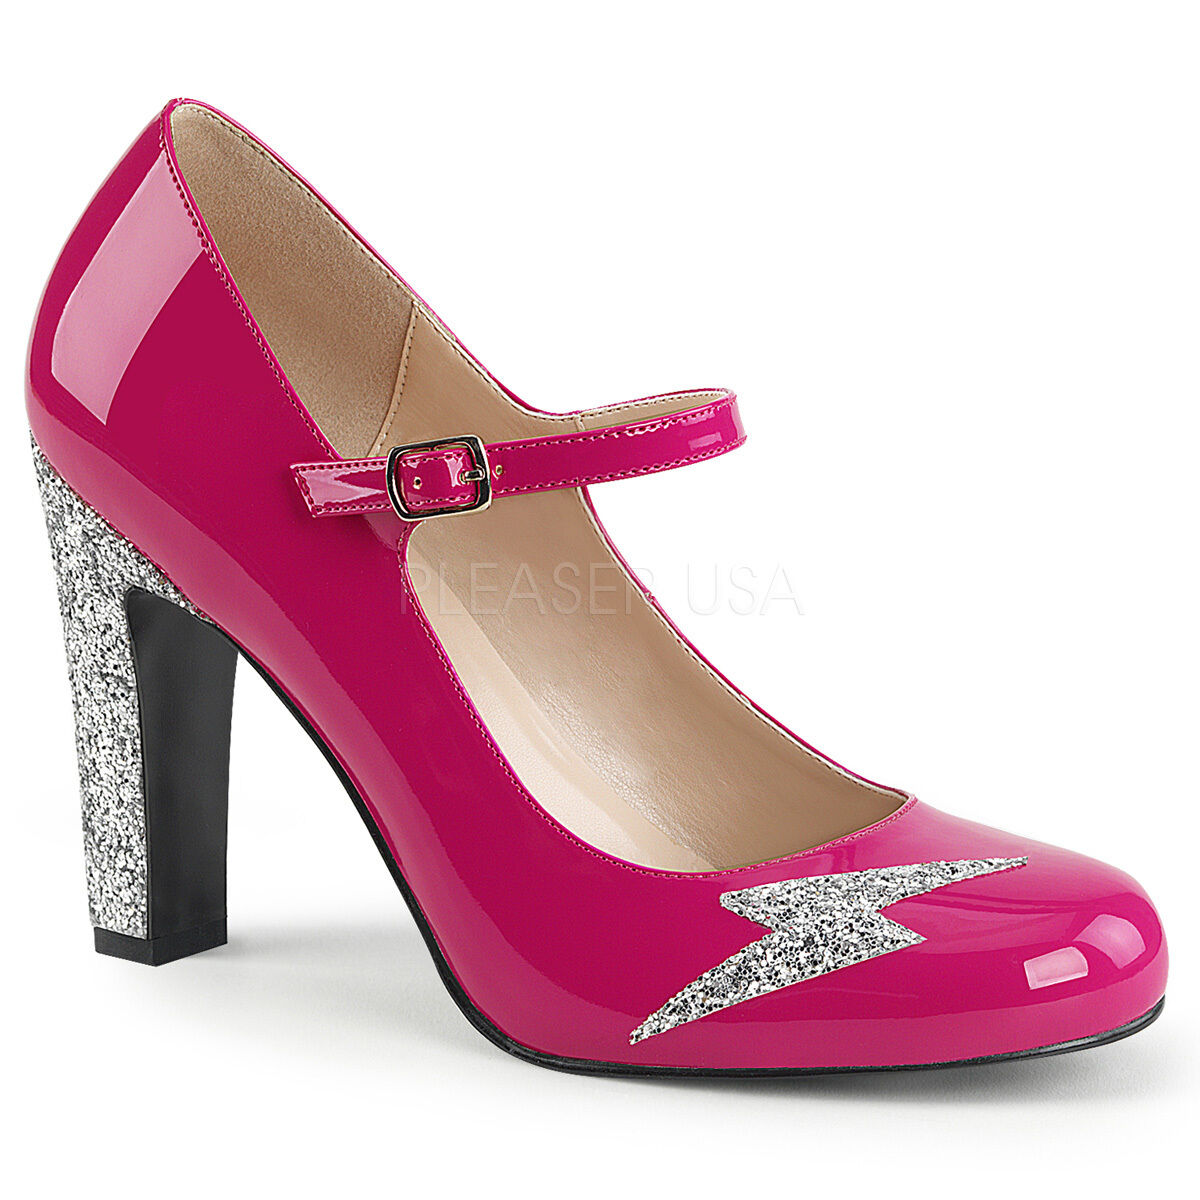 Pleaser Rosa Label QUEEN-02 Round Round Round Toe Mary Jane Pum Lighting Bolt Größe 9-16 a34da9